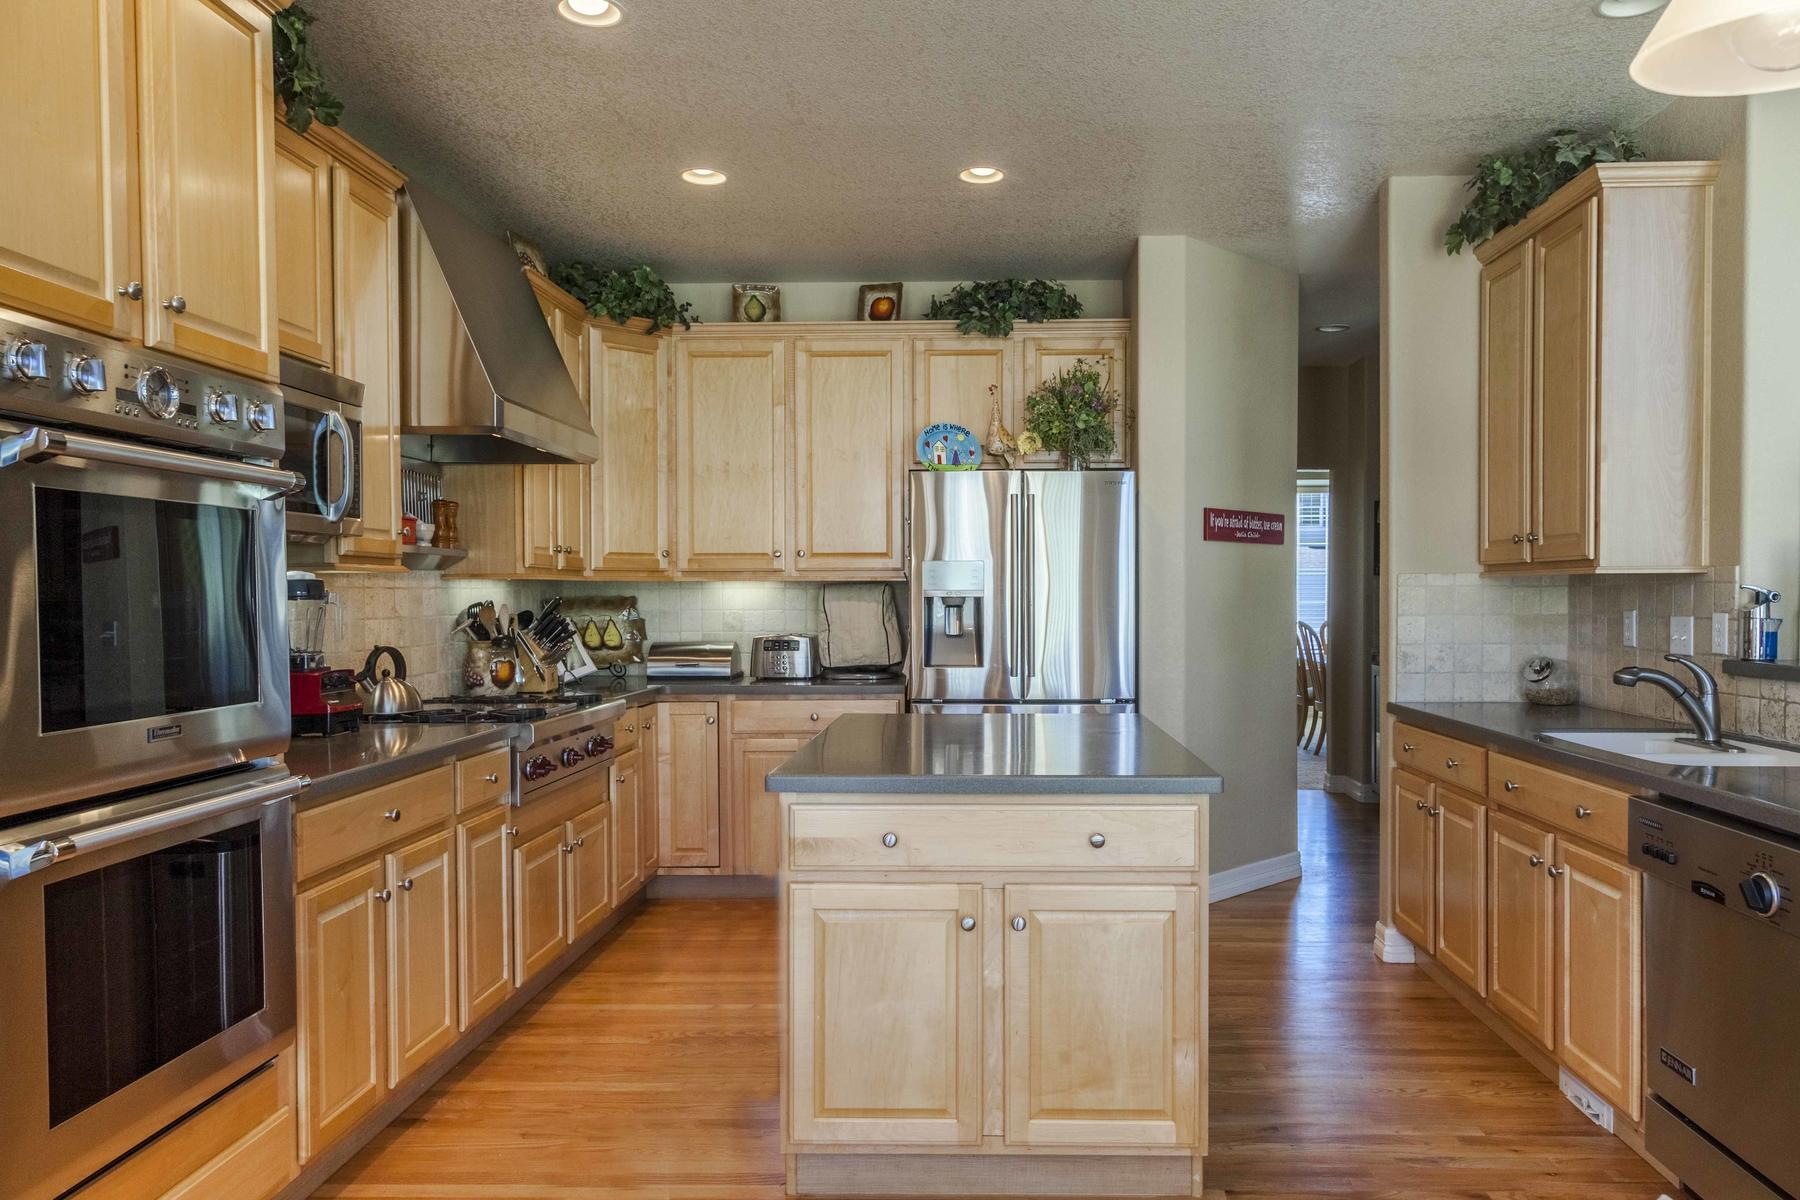 Additional photo for property listing at This Home Has It All! 13405 West 60th Place Arvada, Colorado 80004 United States